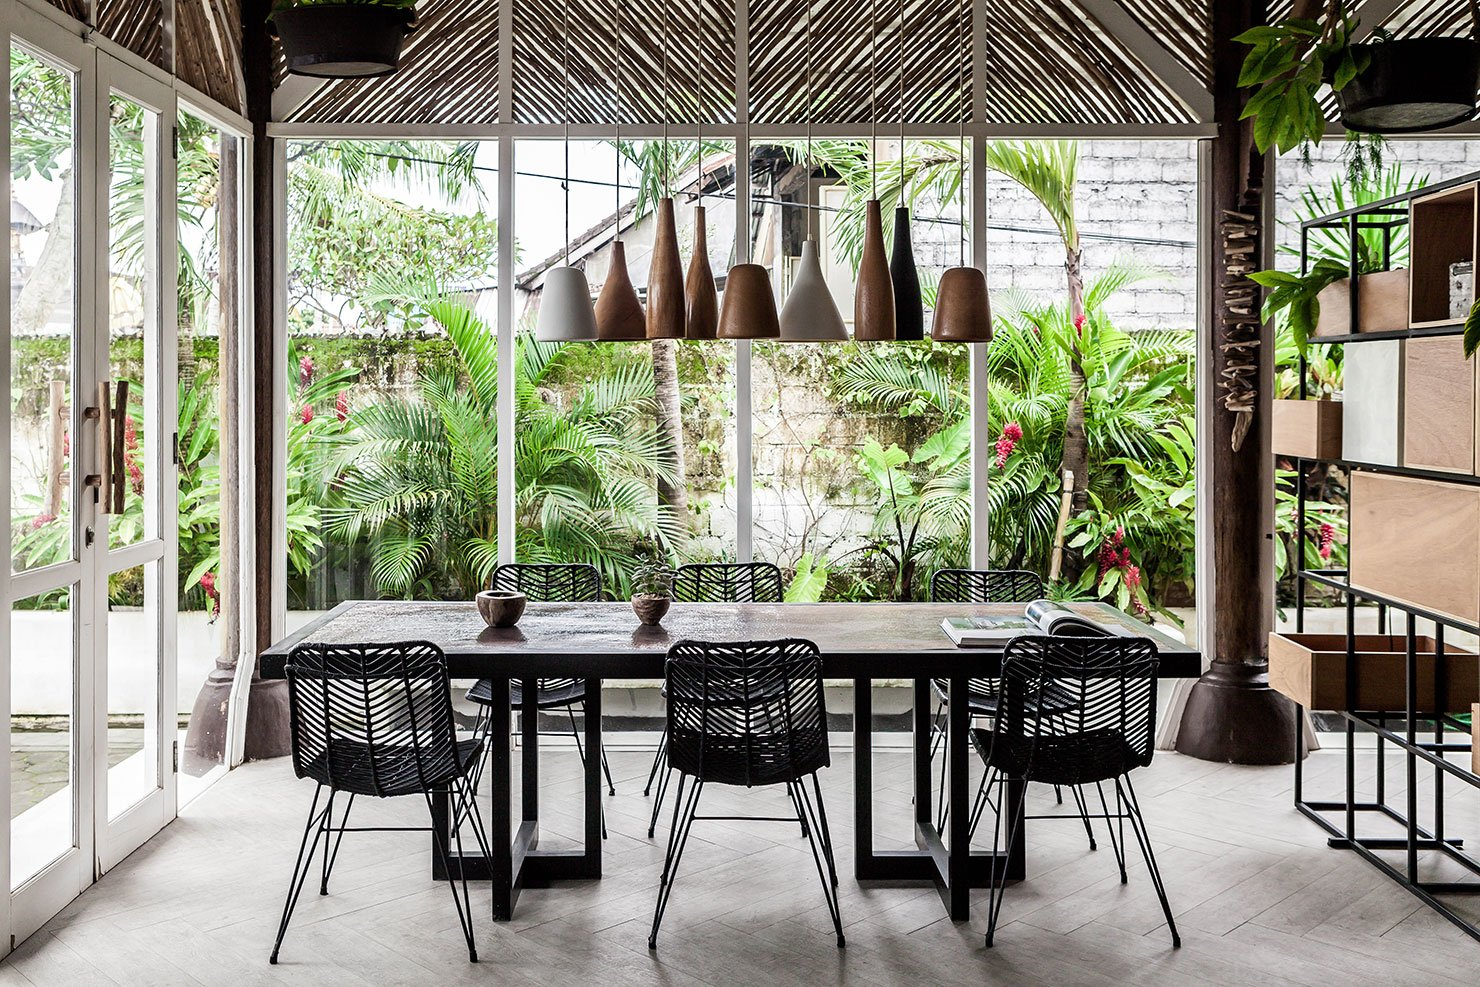 Biombo architecture studio Bali Interiors